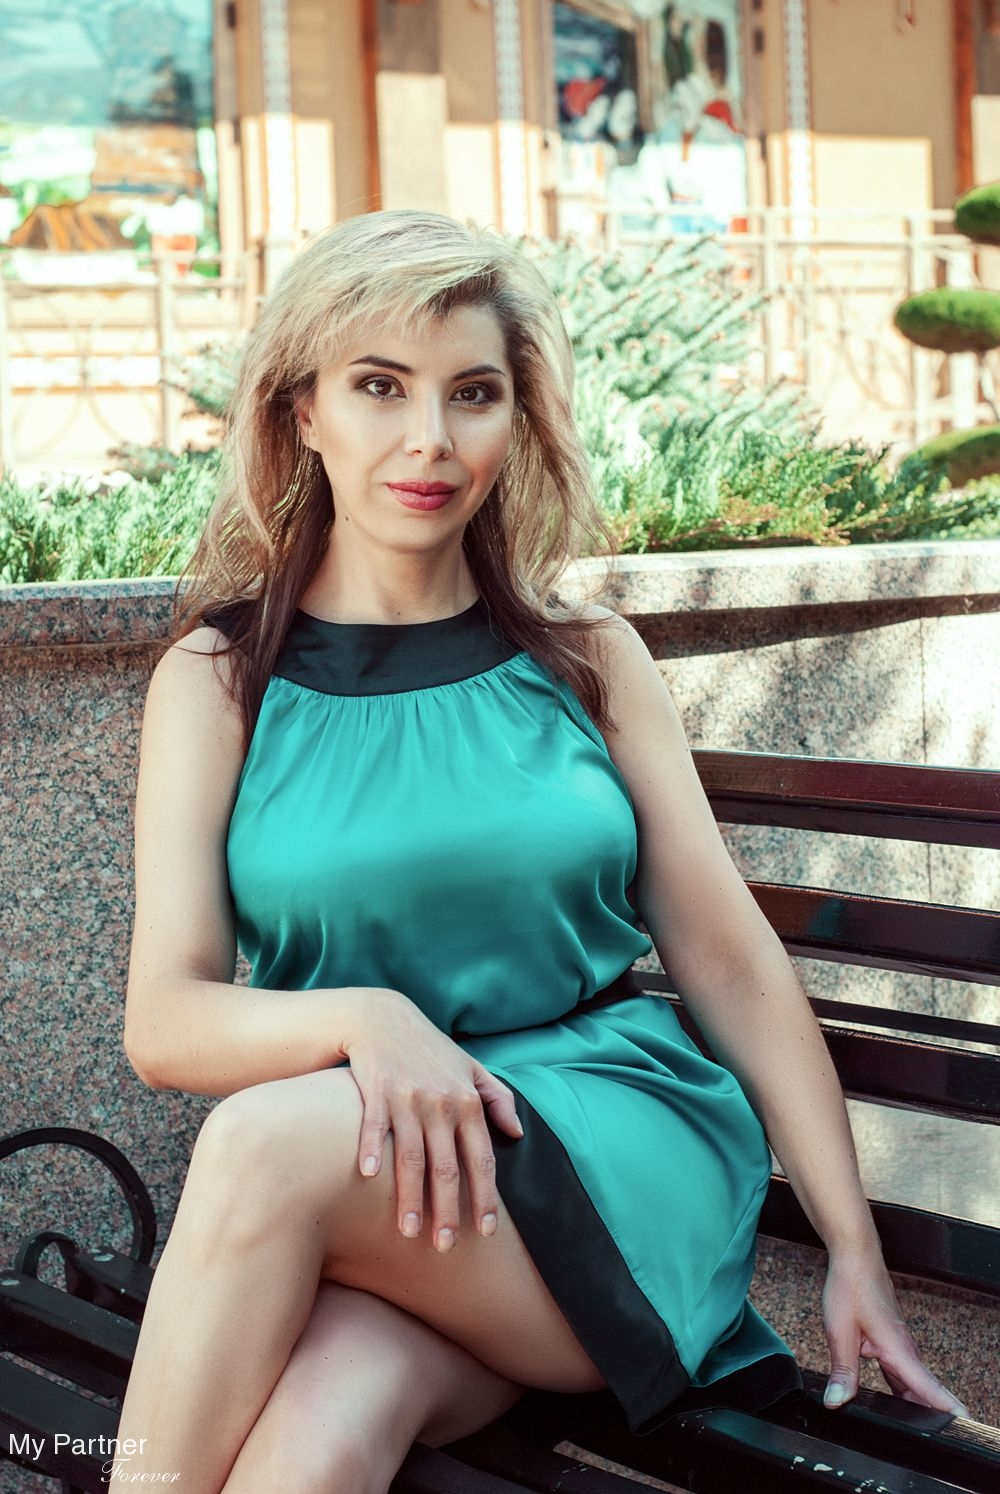 Browse Newest Profiles of Single Women from Belarus